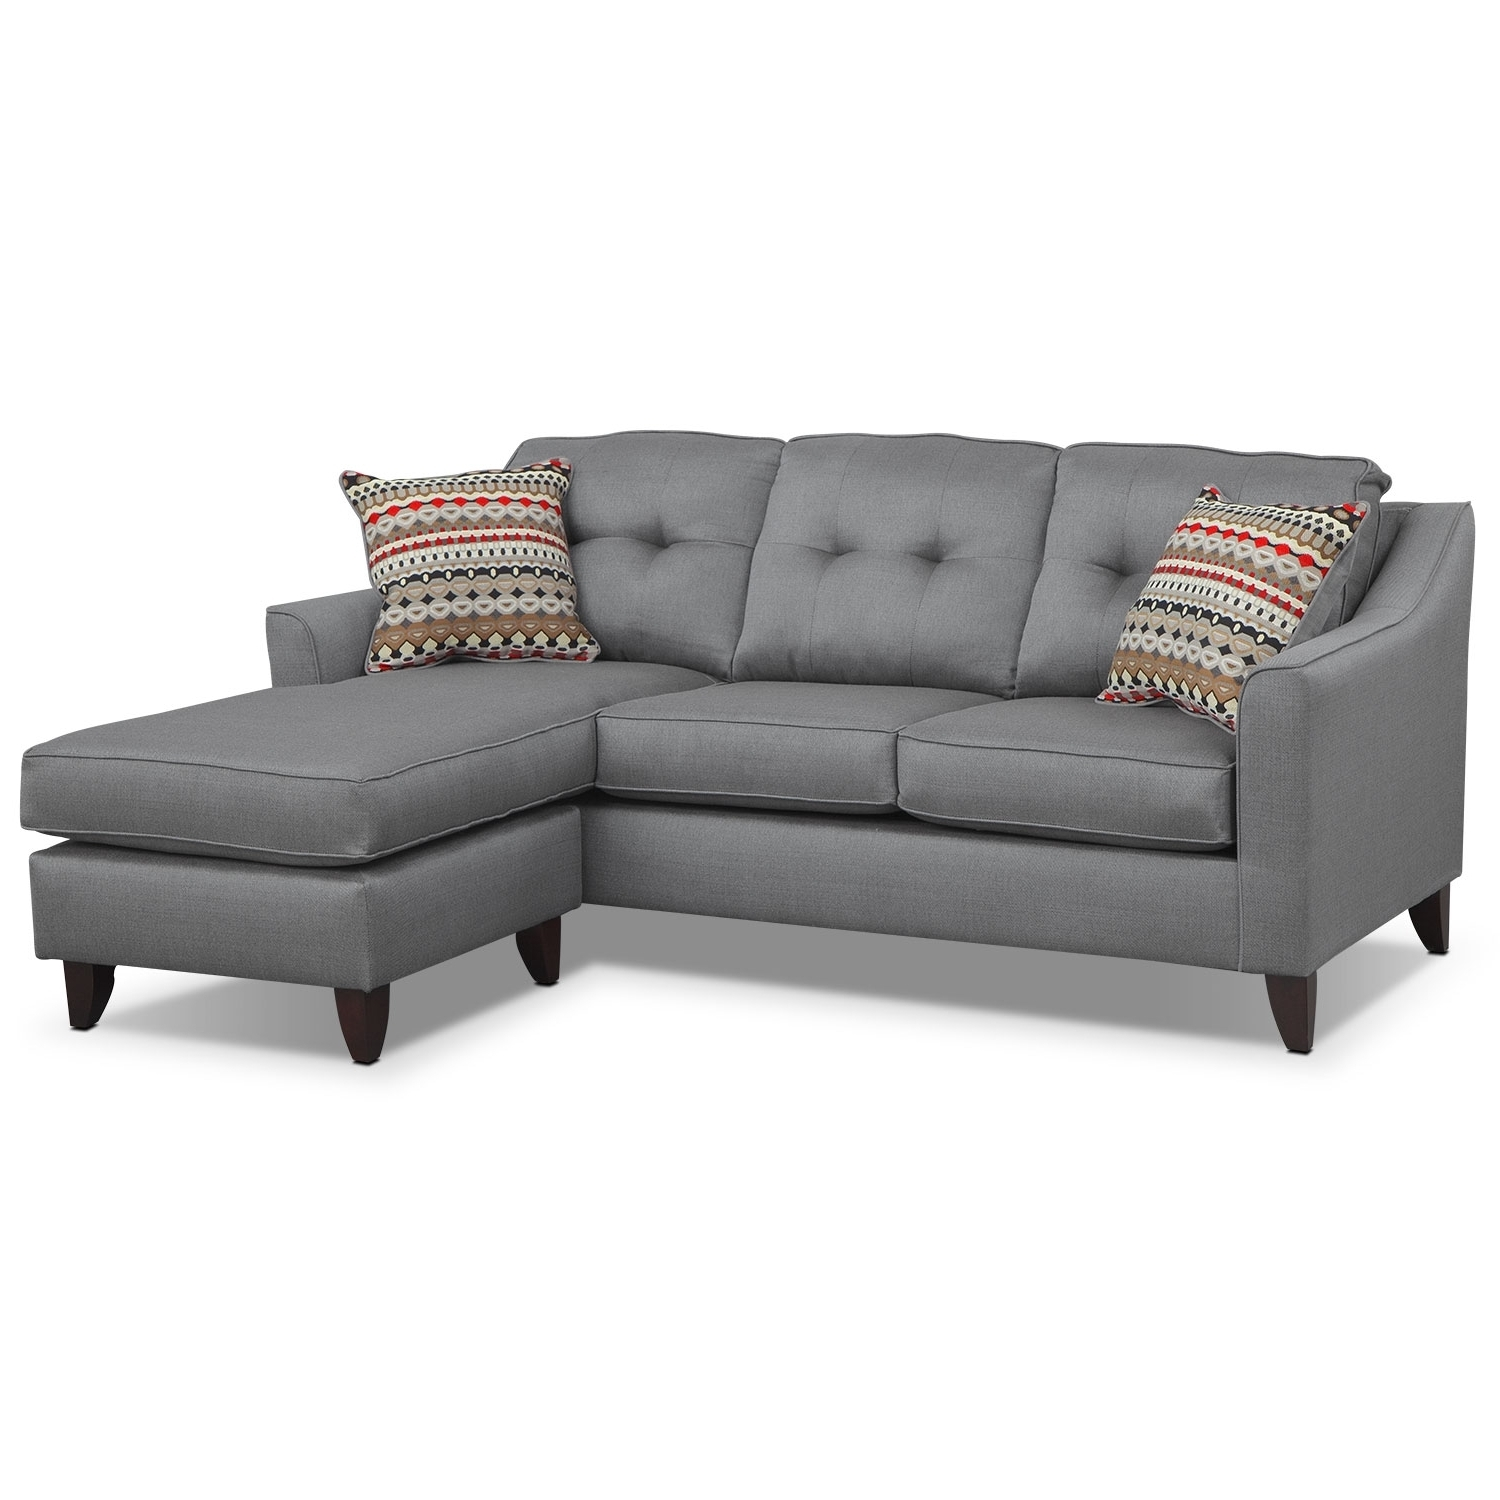 Most Popular Grey Sofa Chaises With Regard To Sofa Design Ideas: Dark Couch Grey Sofa Chaise Light Design Light (View 5 of 15)